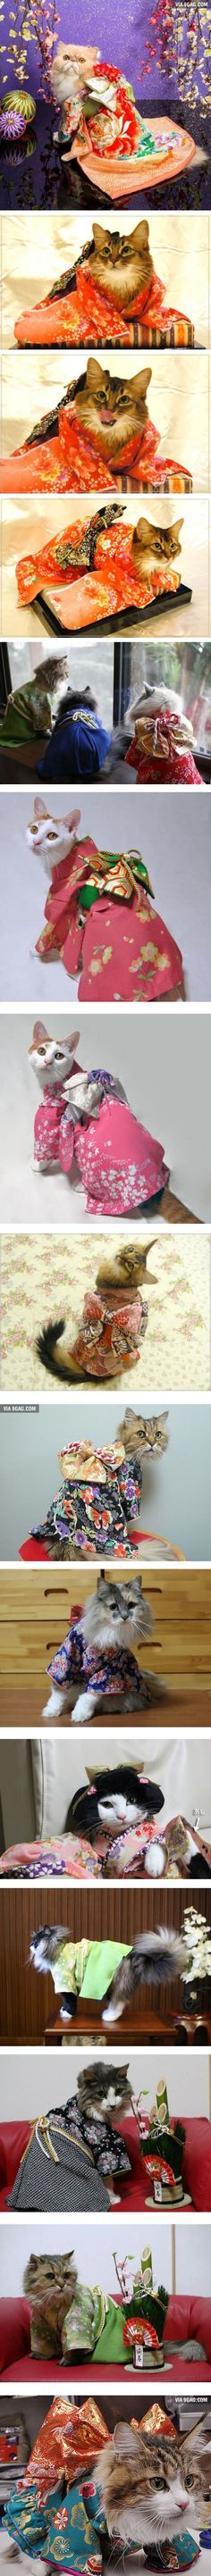 The world of lovely cats in kimonos